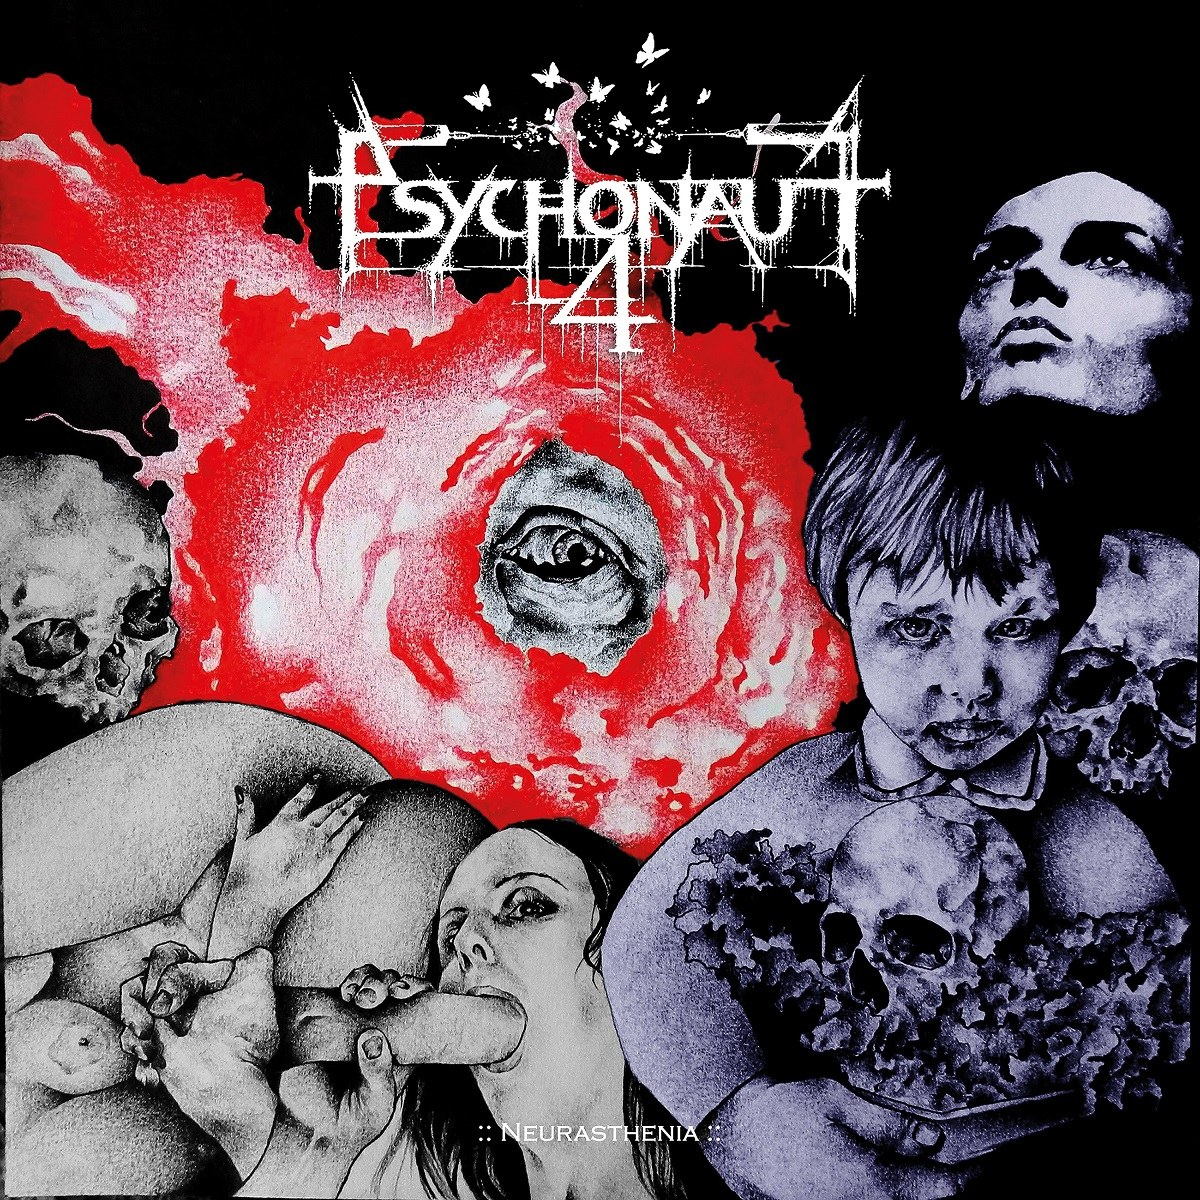 Review for Psychonaut 4 - Neurasthenia